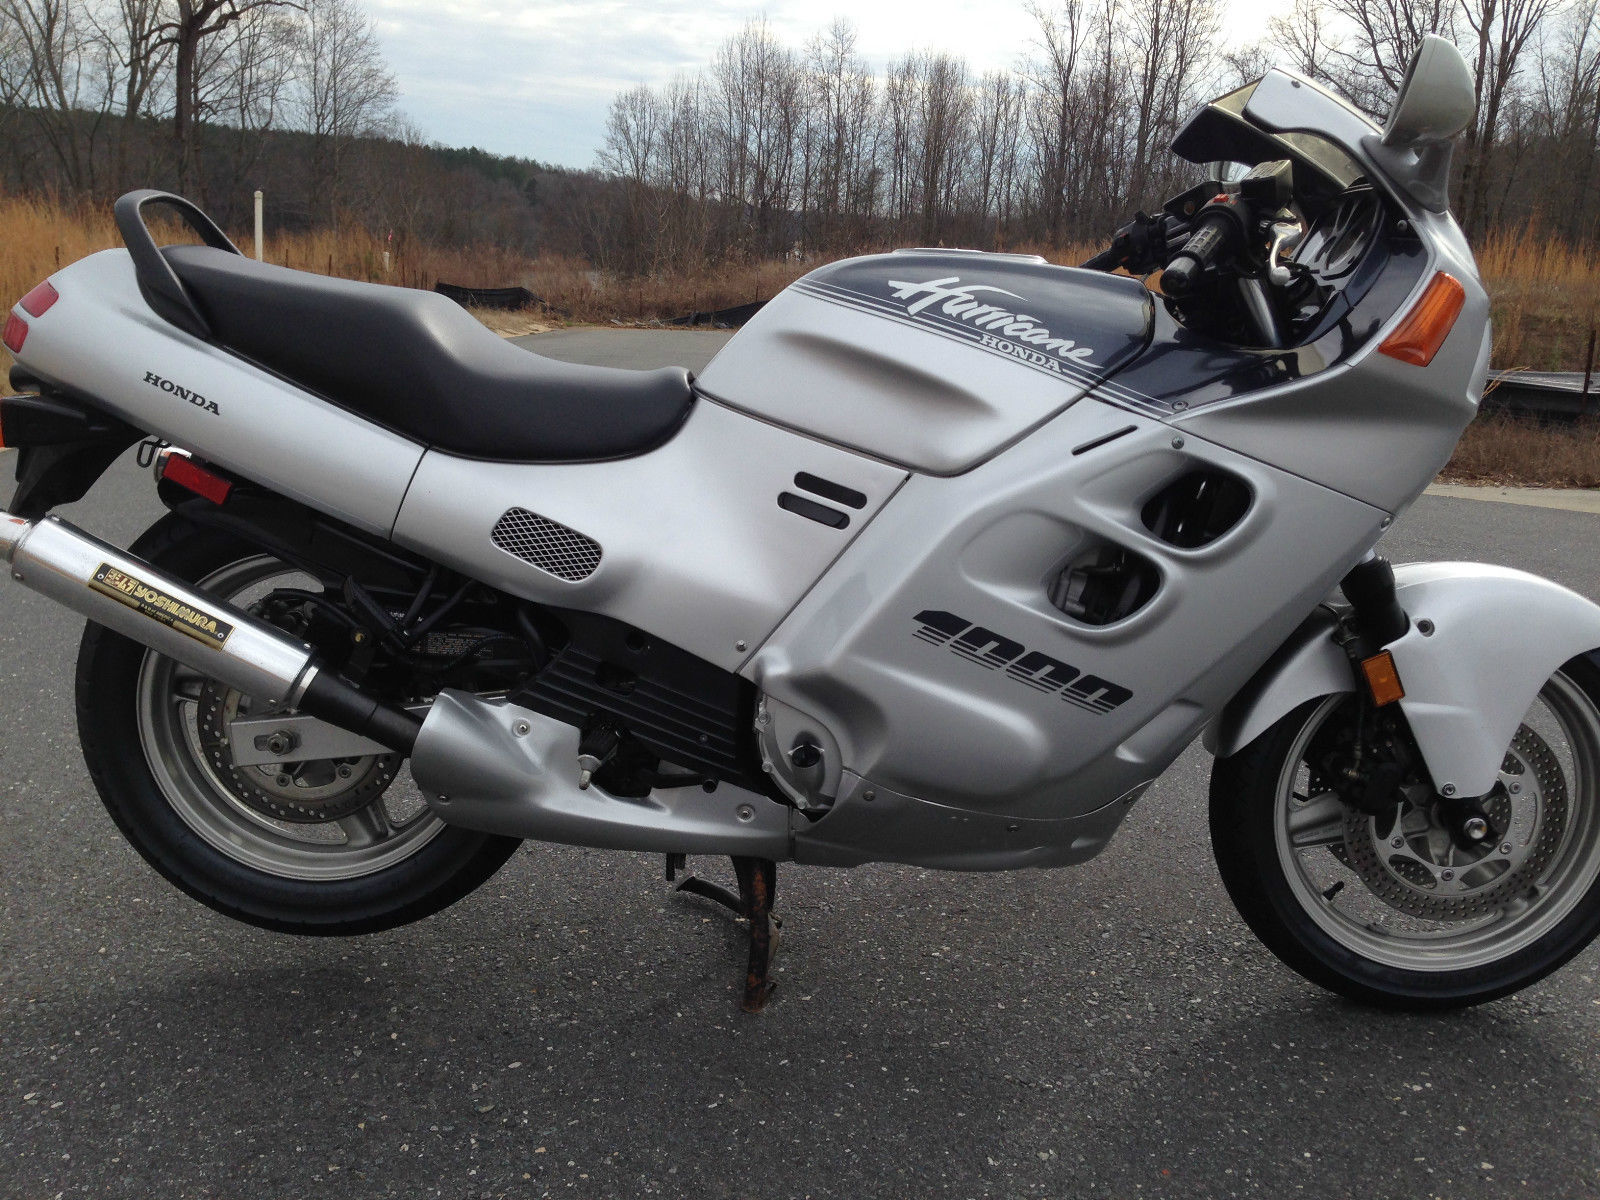 1988 honda cbr1000f hurricane bike urious